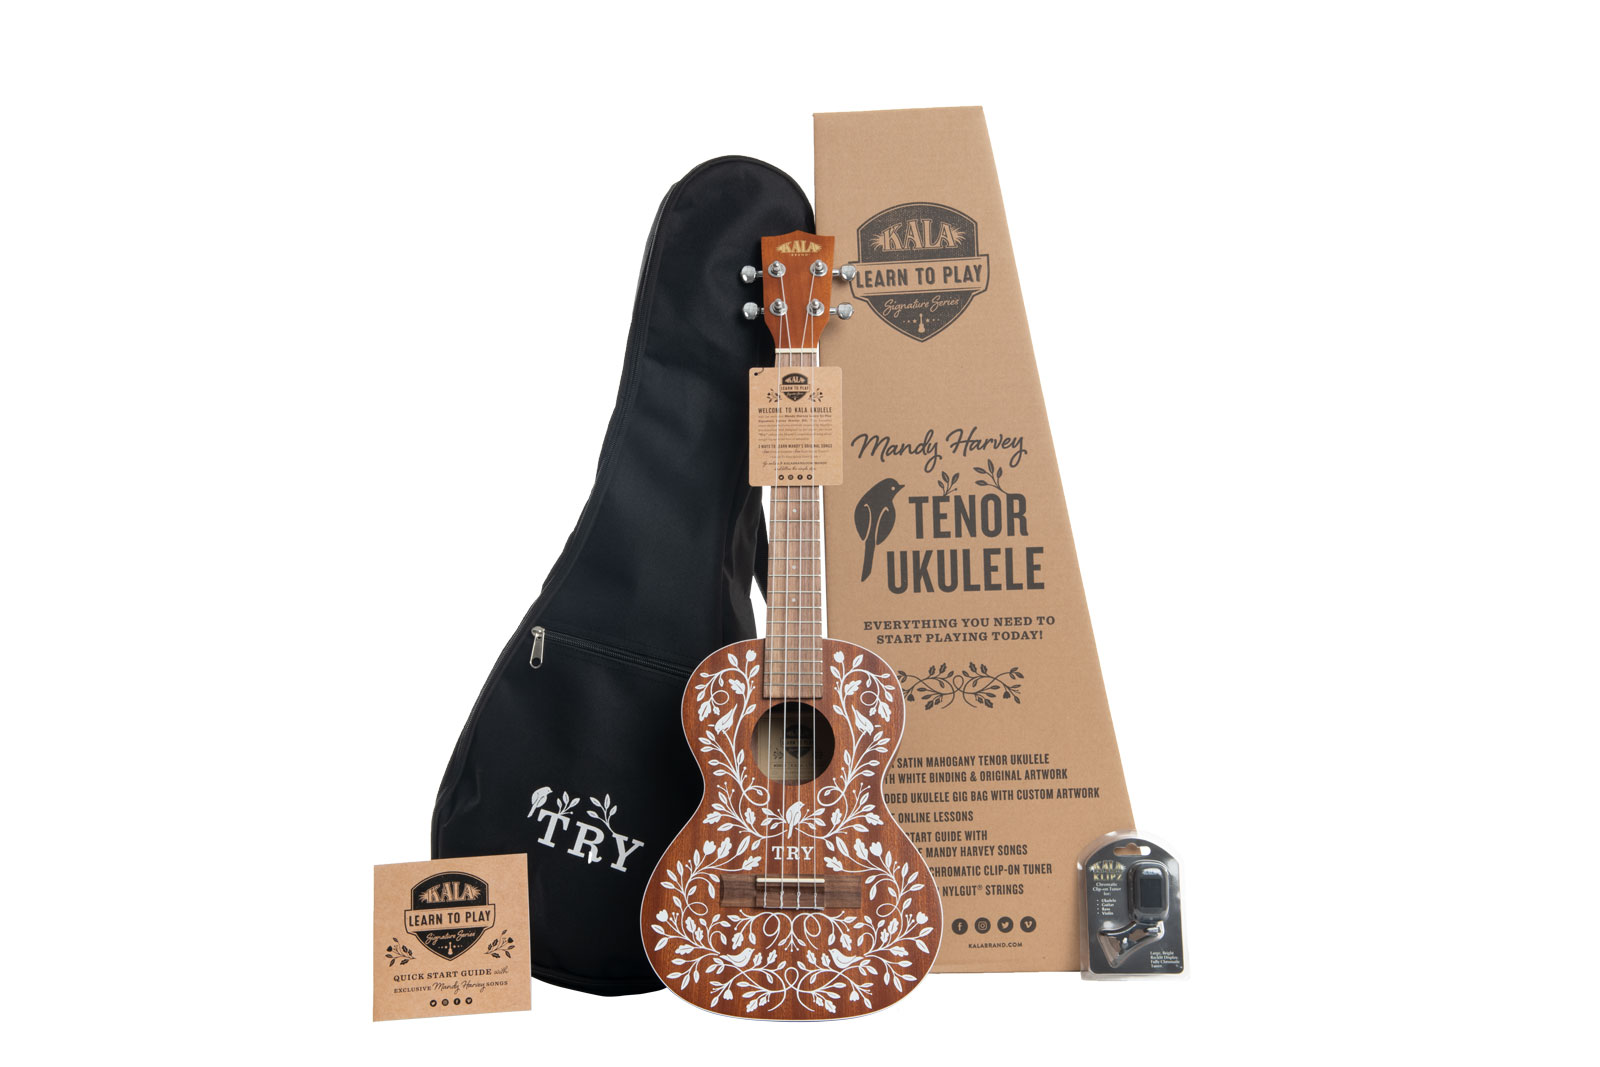 Aquila Soprano Ukulele Strings 3 Pack with Fender Play Online Lessons